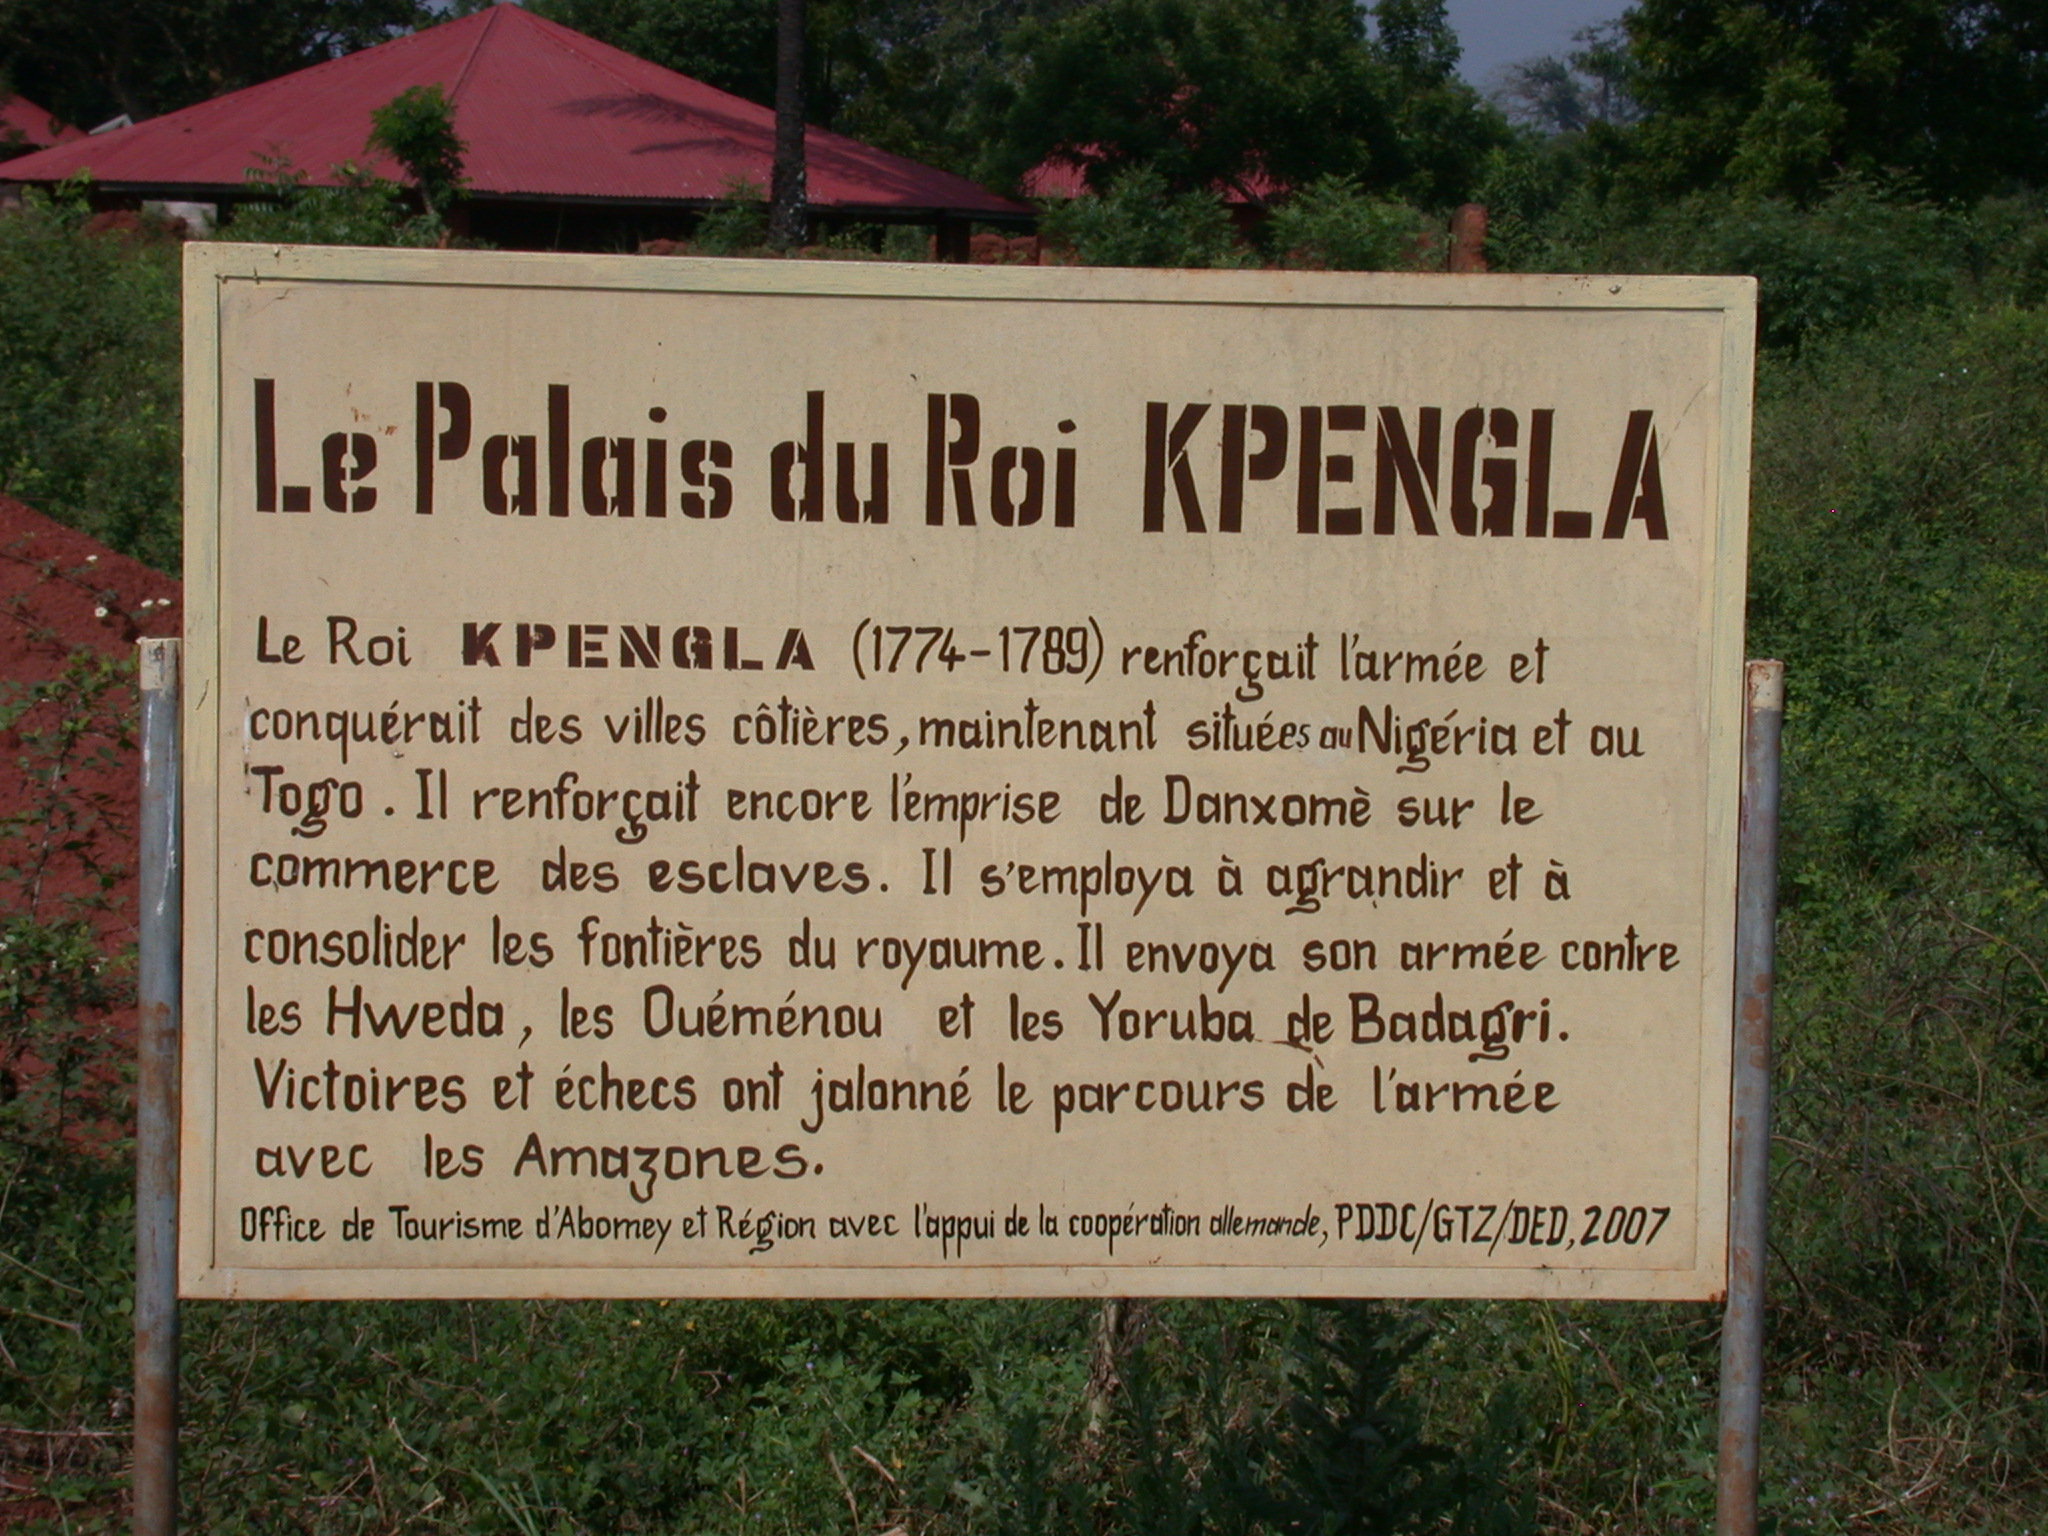 Sign for Palace of King Kpengla, Abomey, Benin